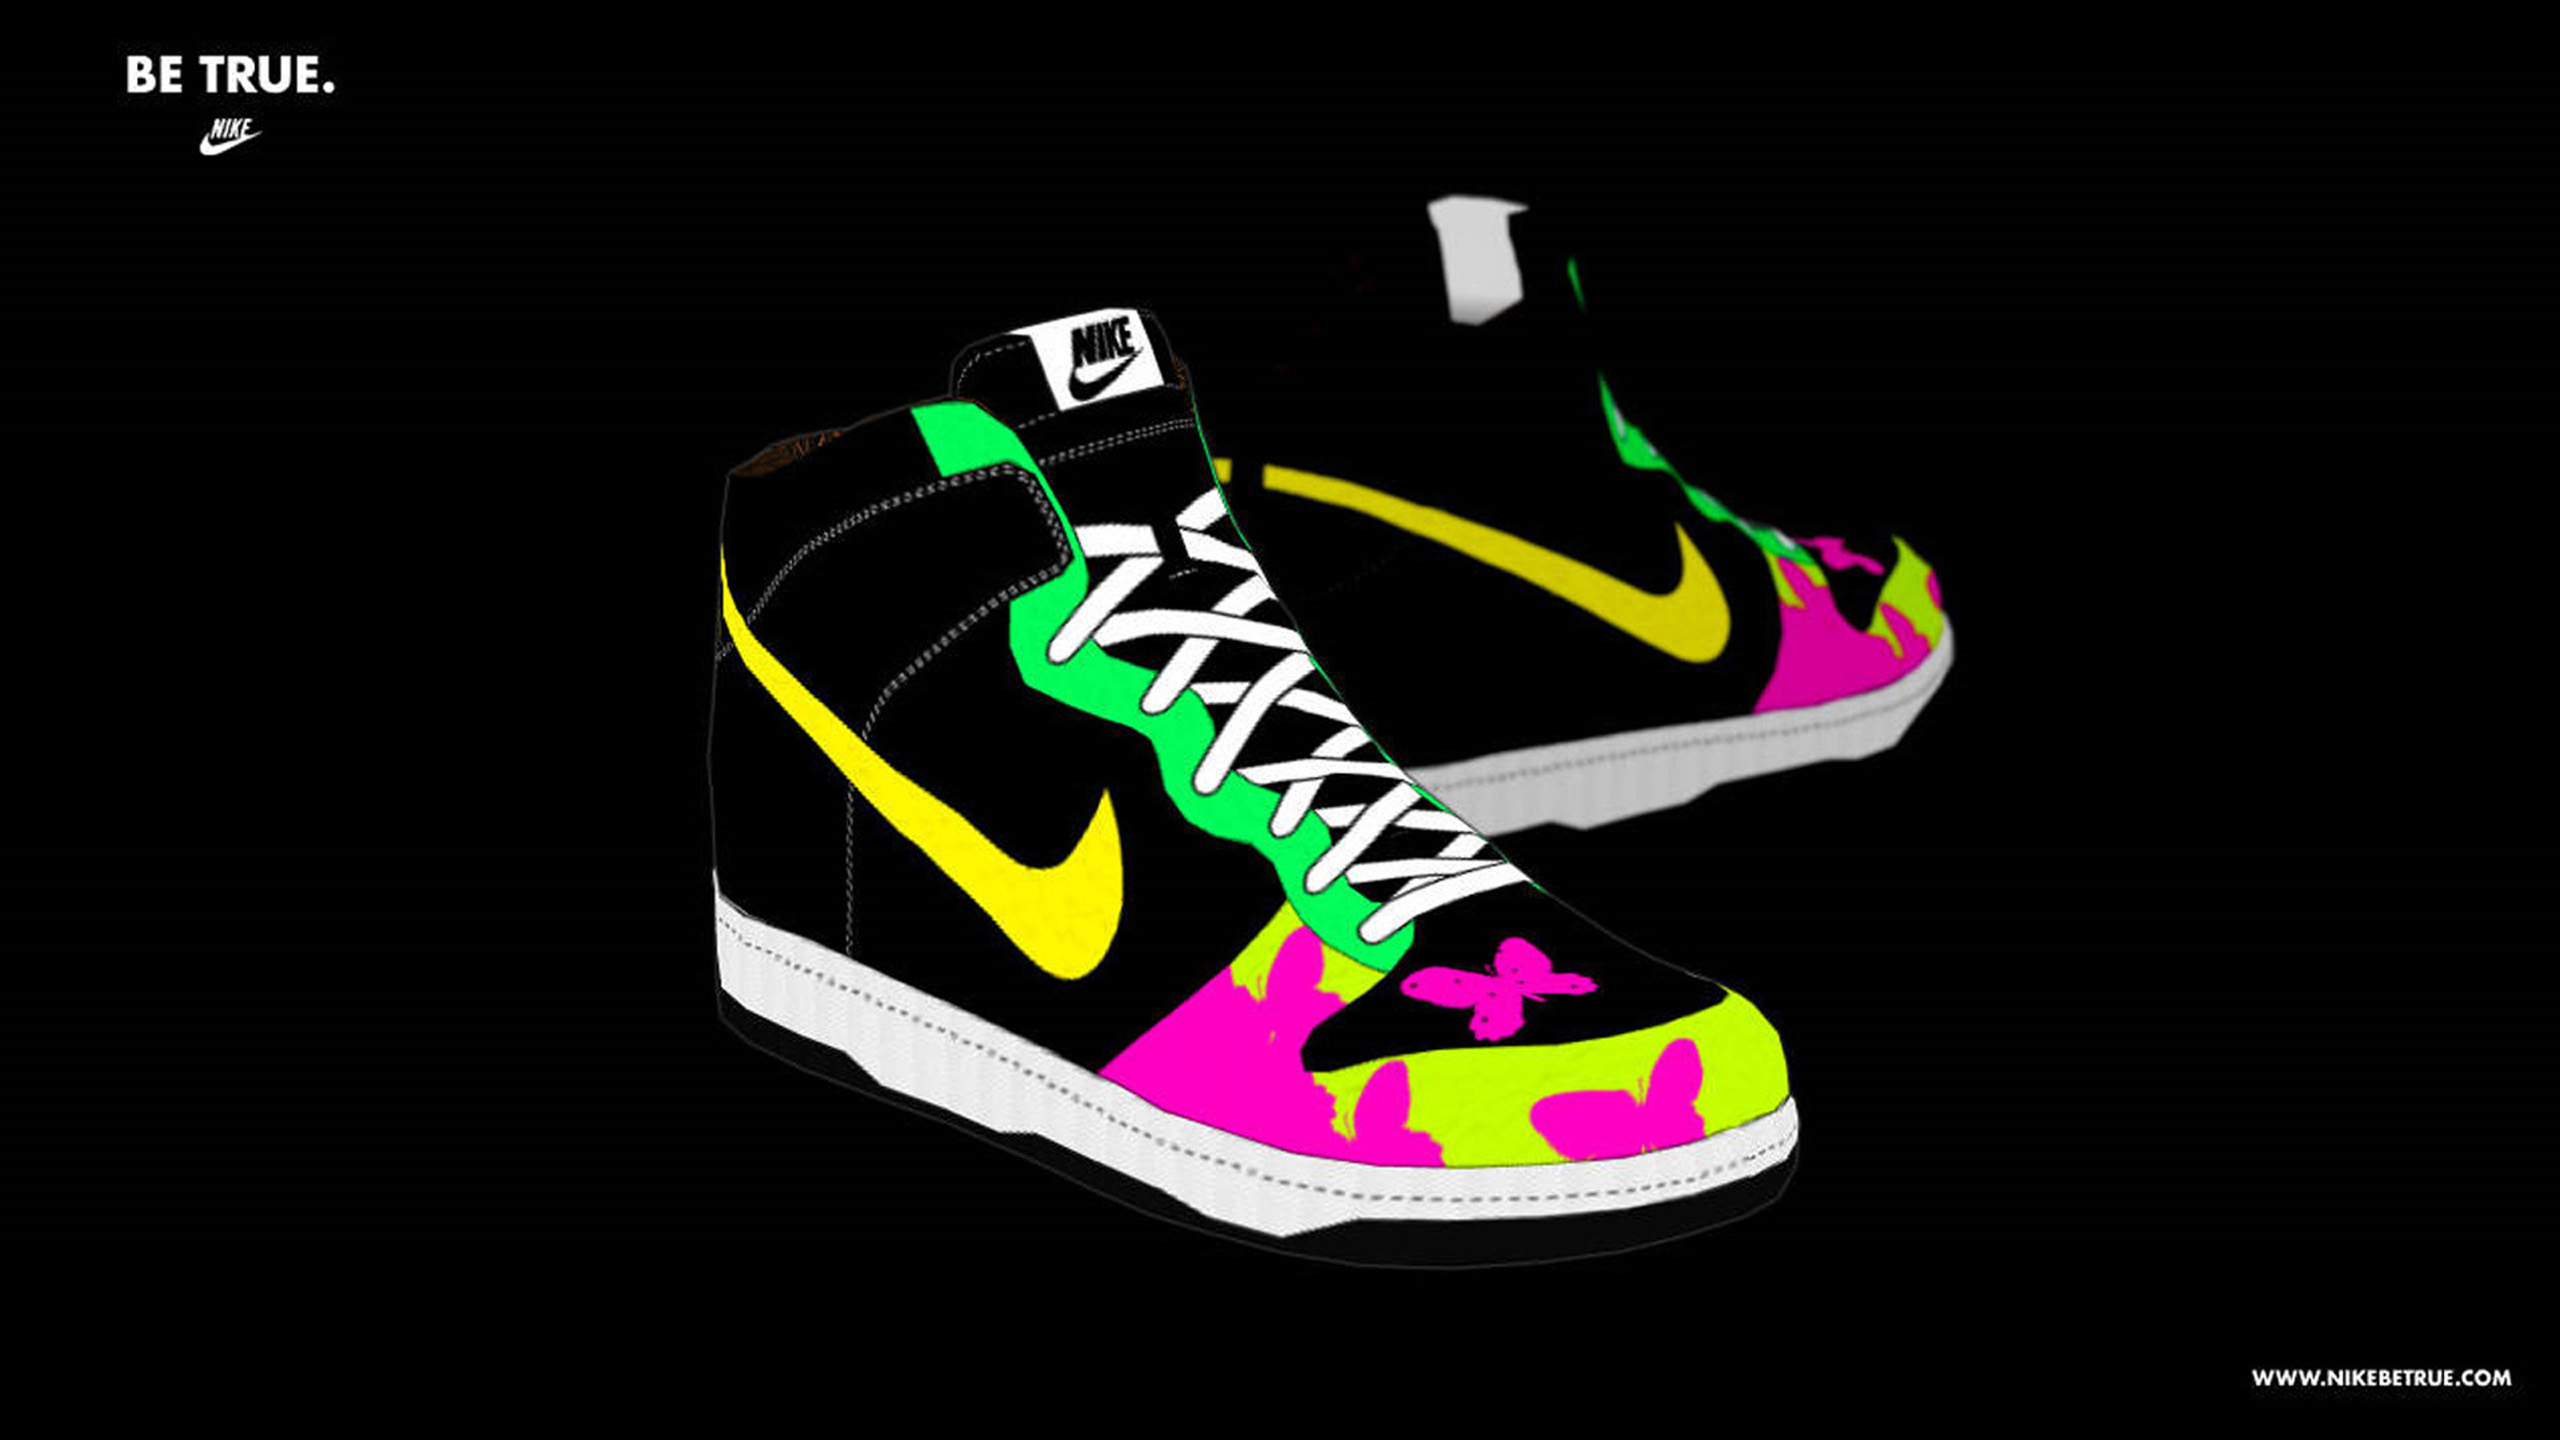 Nike Shoe Wallpaper Awesome Pictures And 2560x1440